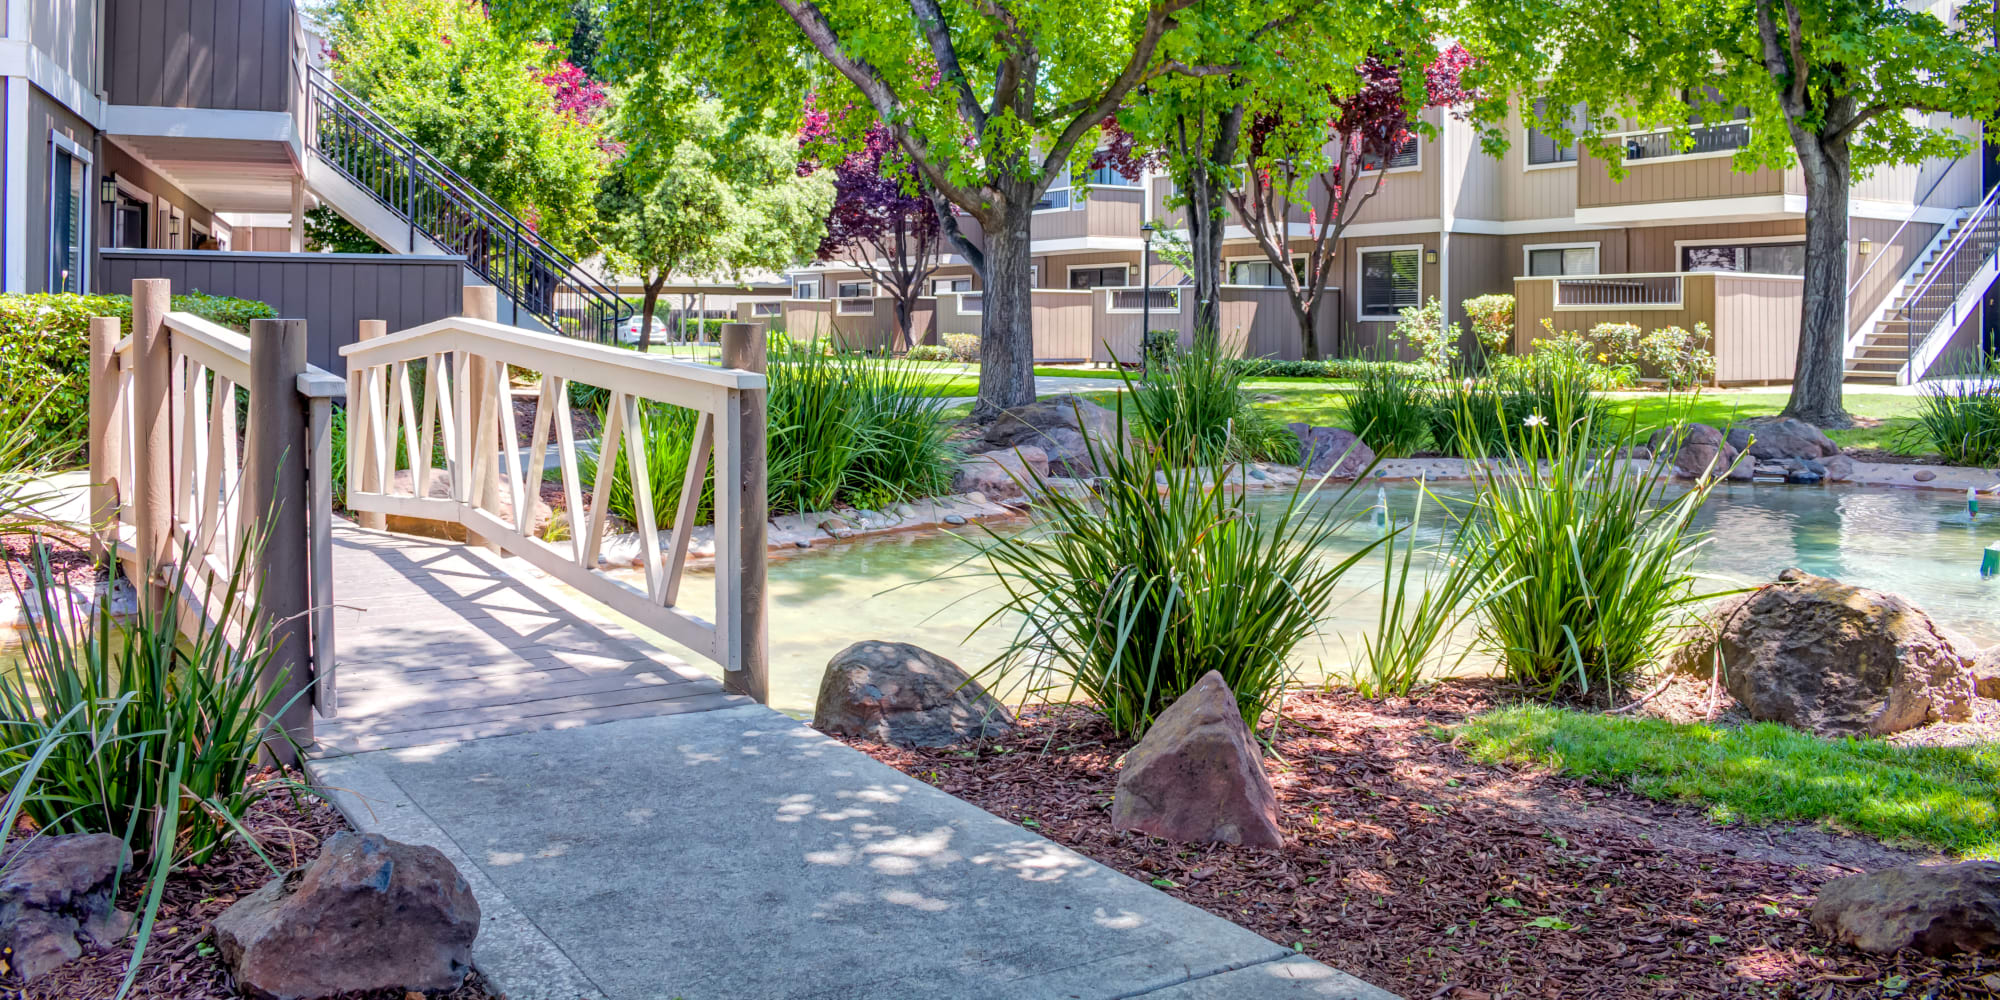 Apartments at Sofi Berryessa in San Jose, California